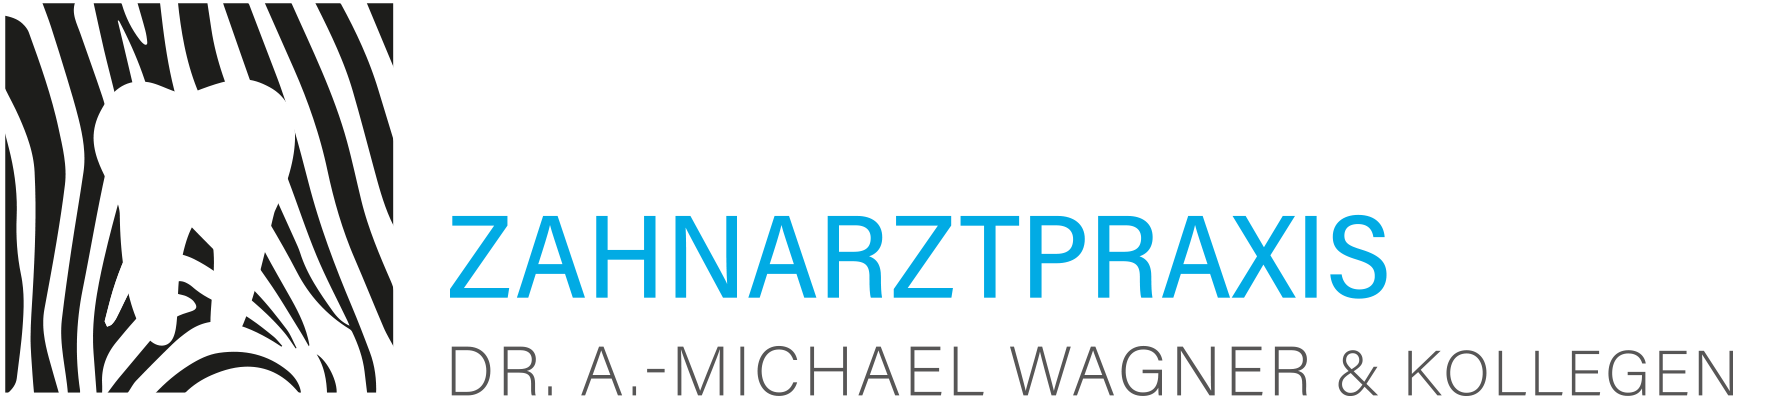 Zahnarztpraxis Dr. Andreas-Michael Wagner